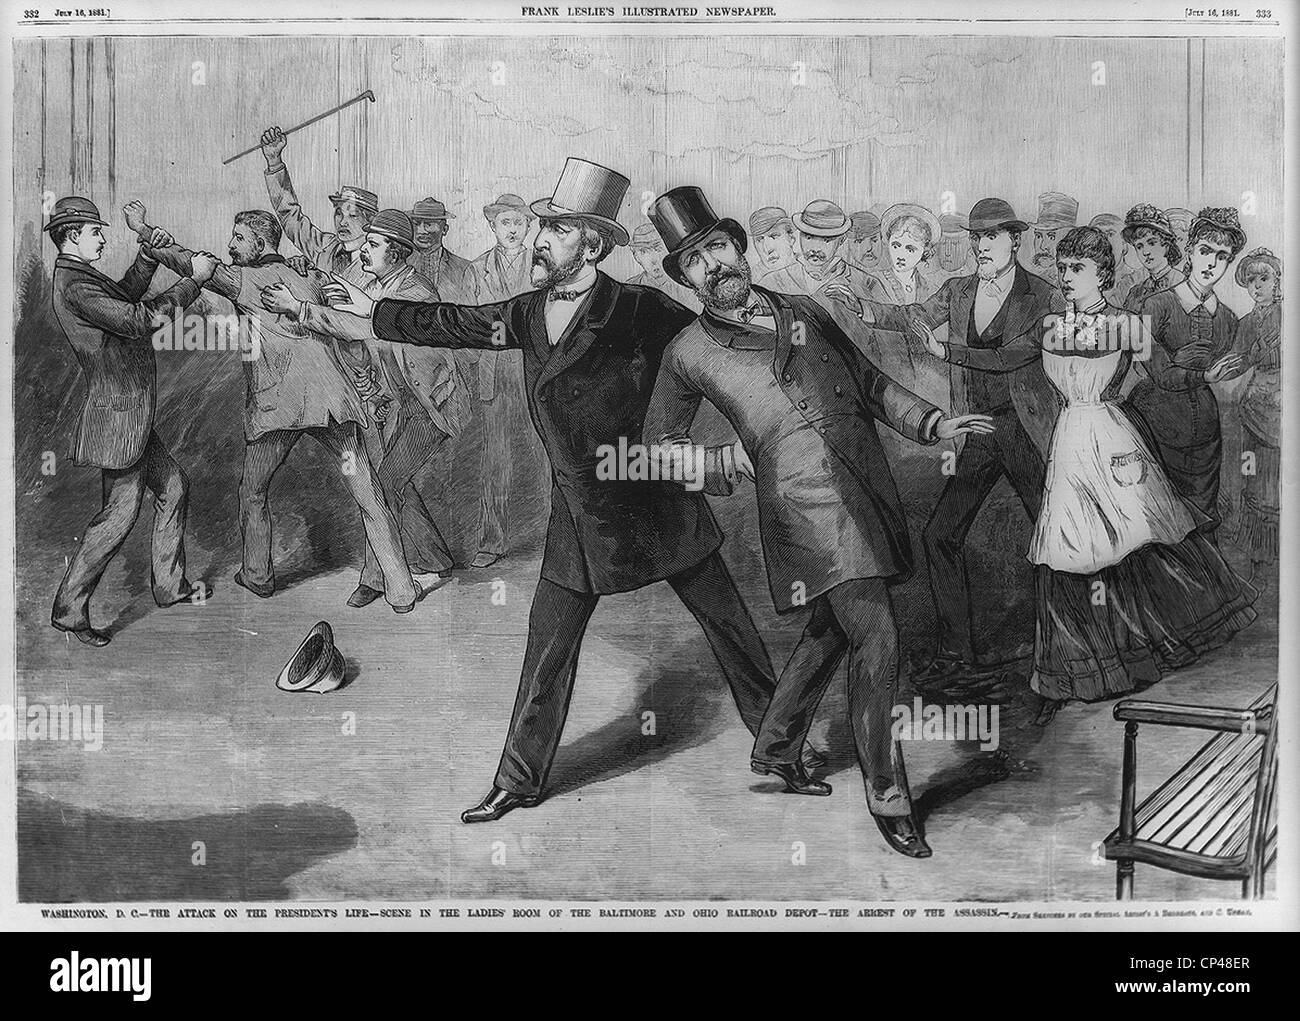 The attack on the President Washington DC - Stock Image